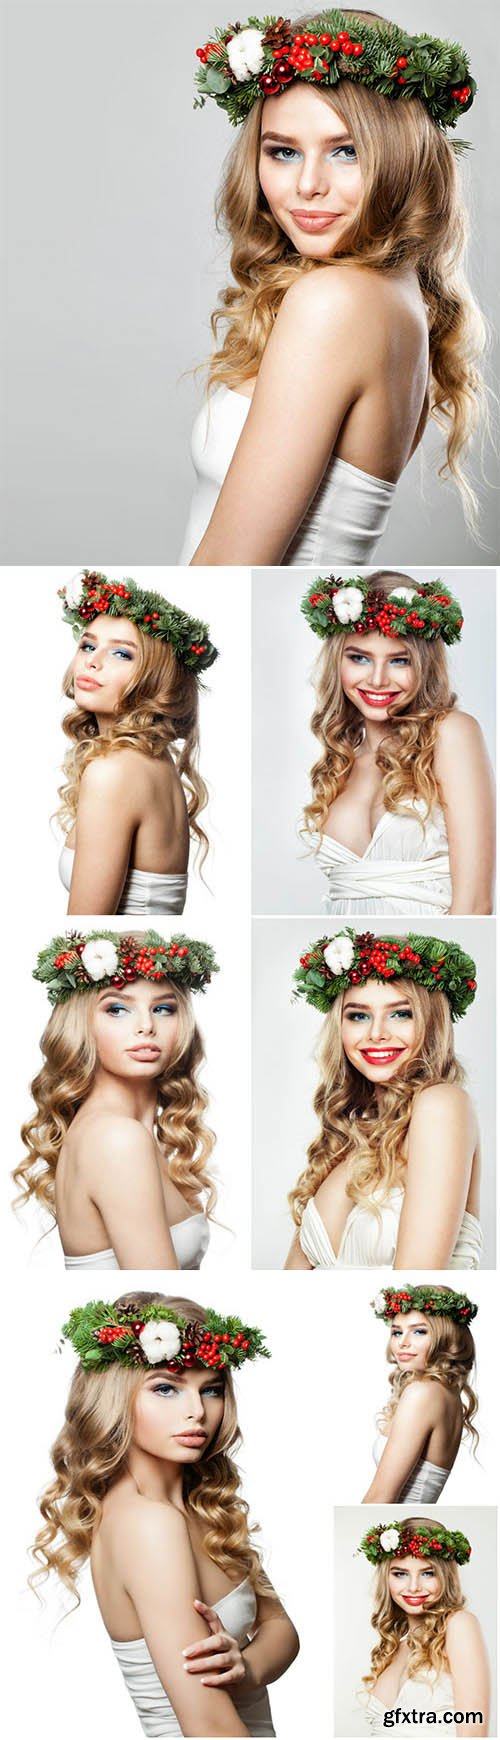 New Year and Christmas stock photos №79